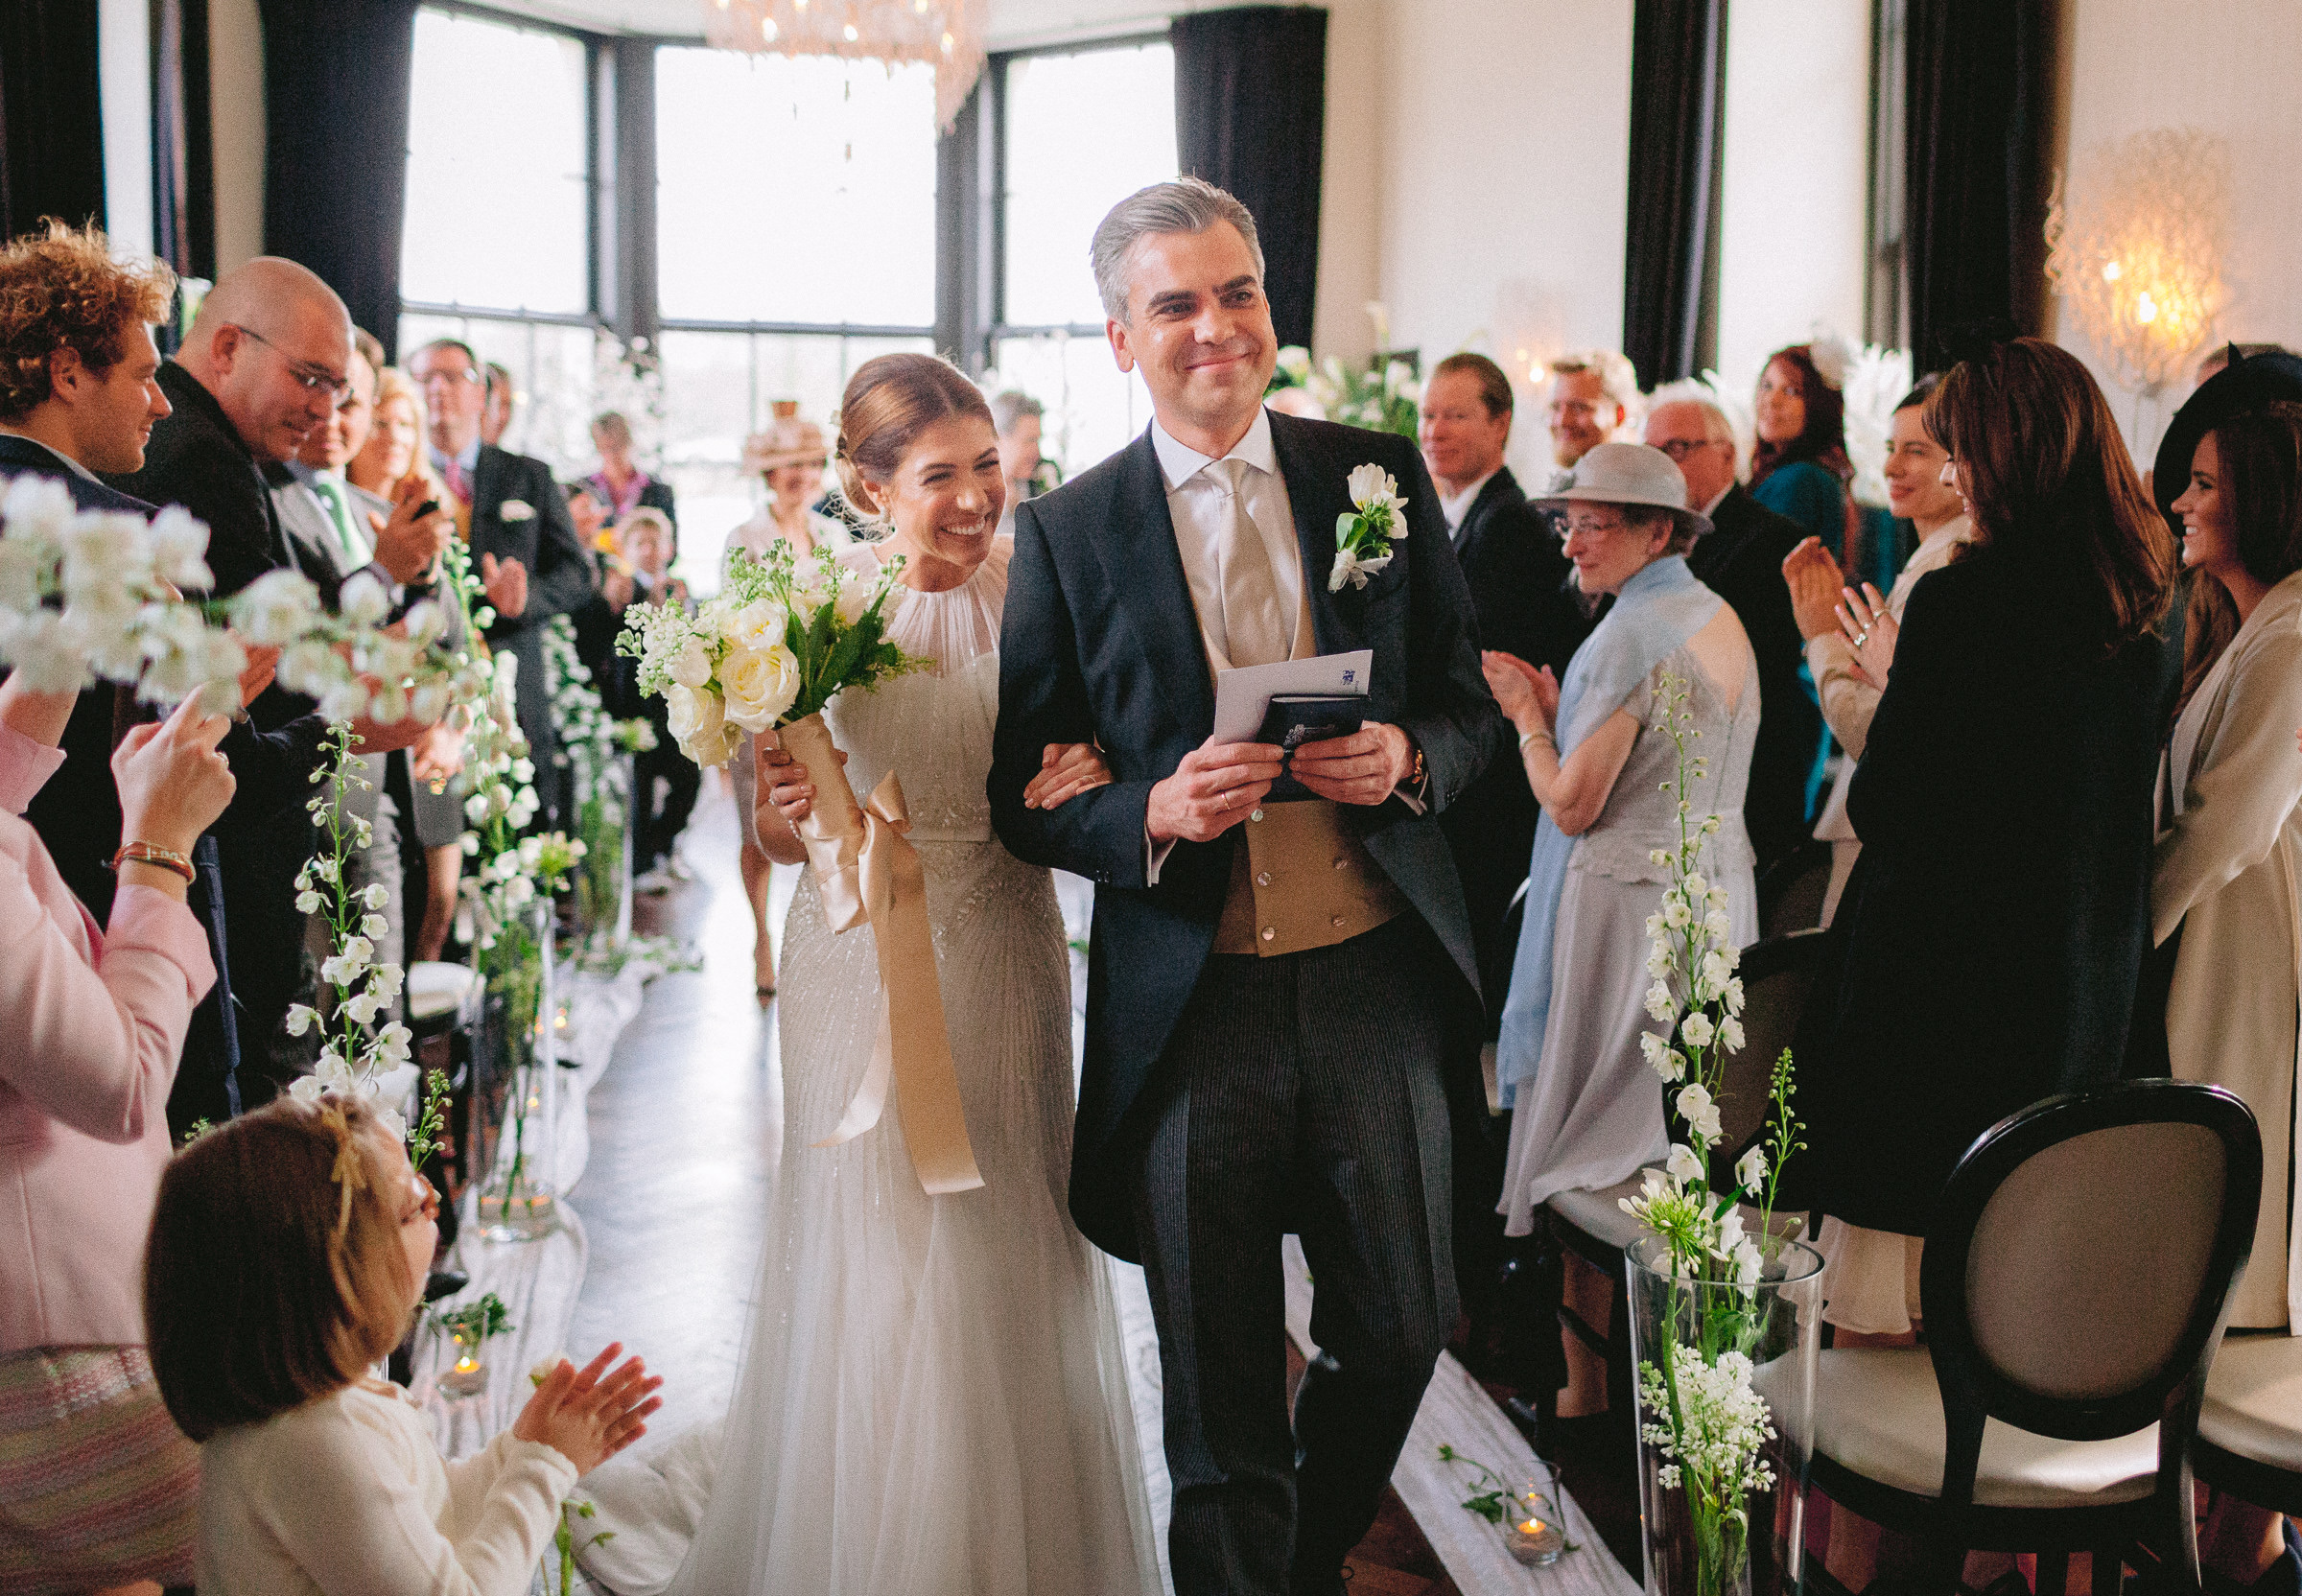 Smiling bride and groom recessional - photo by Peter van der Lingen Wedding Photography